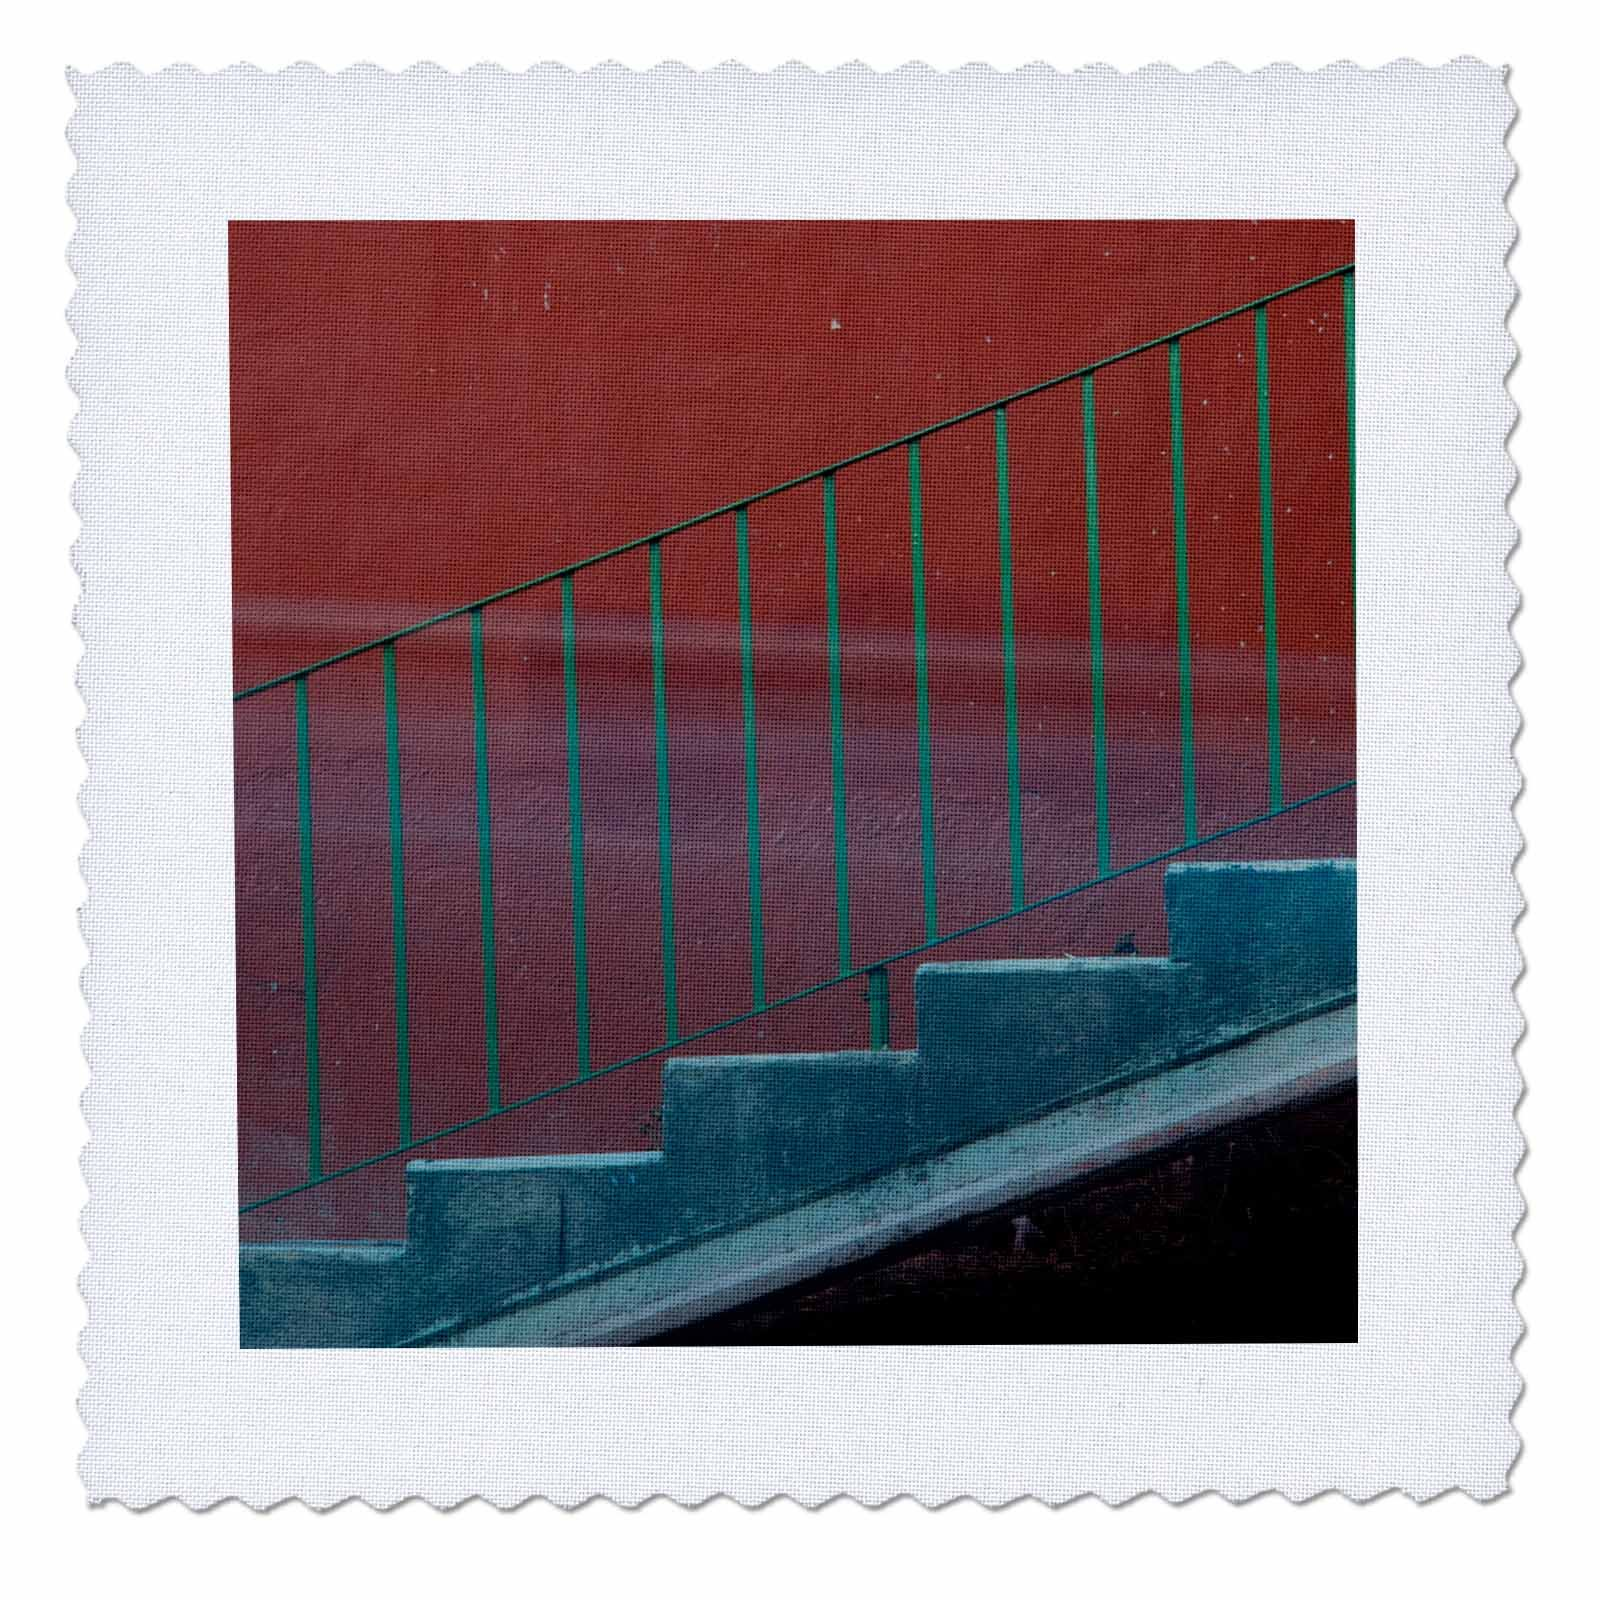 3dRose Danita Delimont - Architecture - Mexico, Guanajuato. Stairs and railing against a red wall. - 18x18 inch quilt square (qs_258501_7)